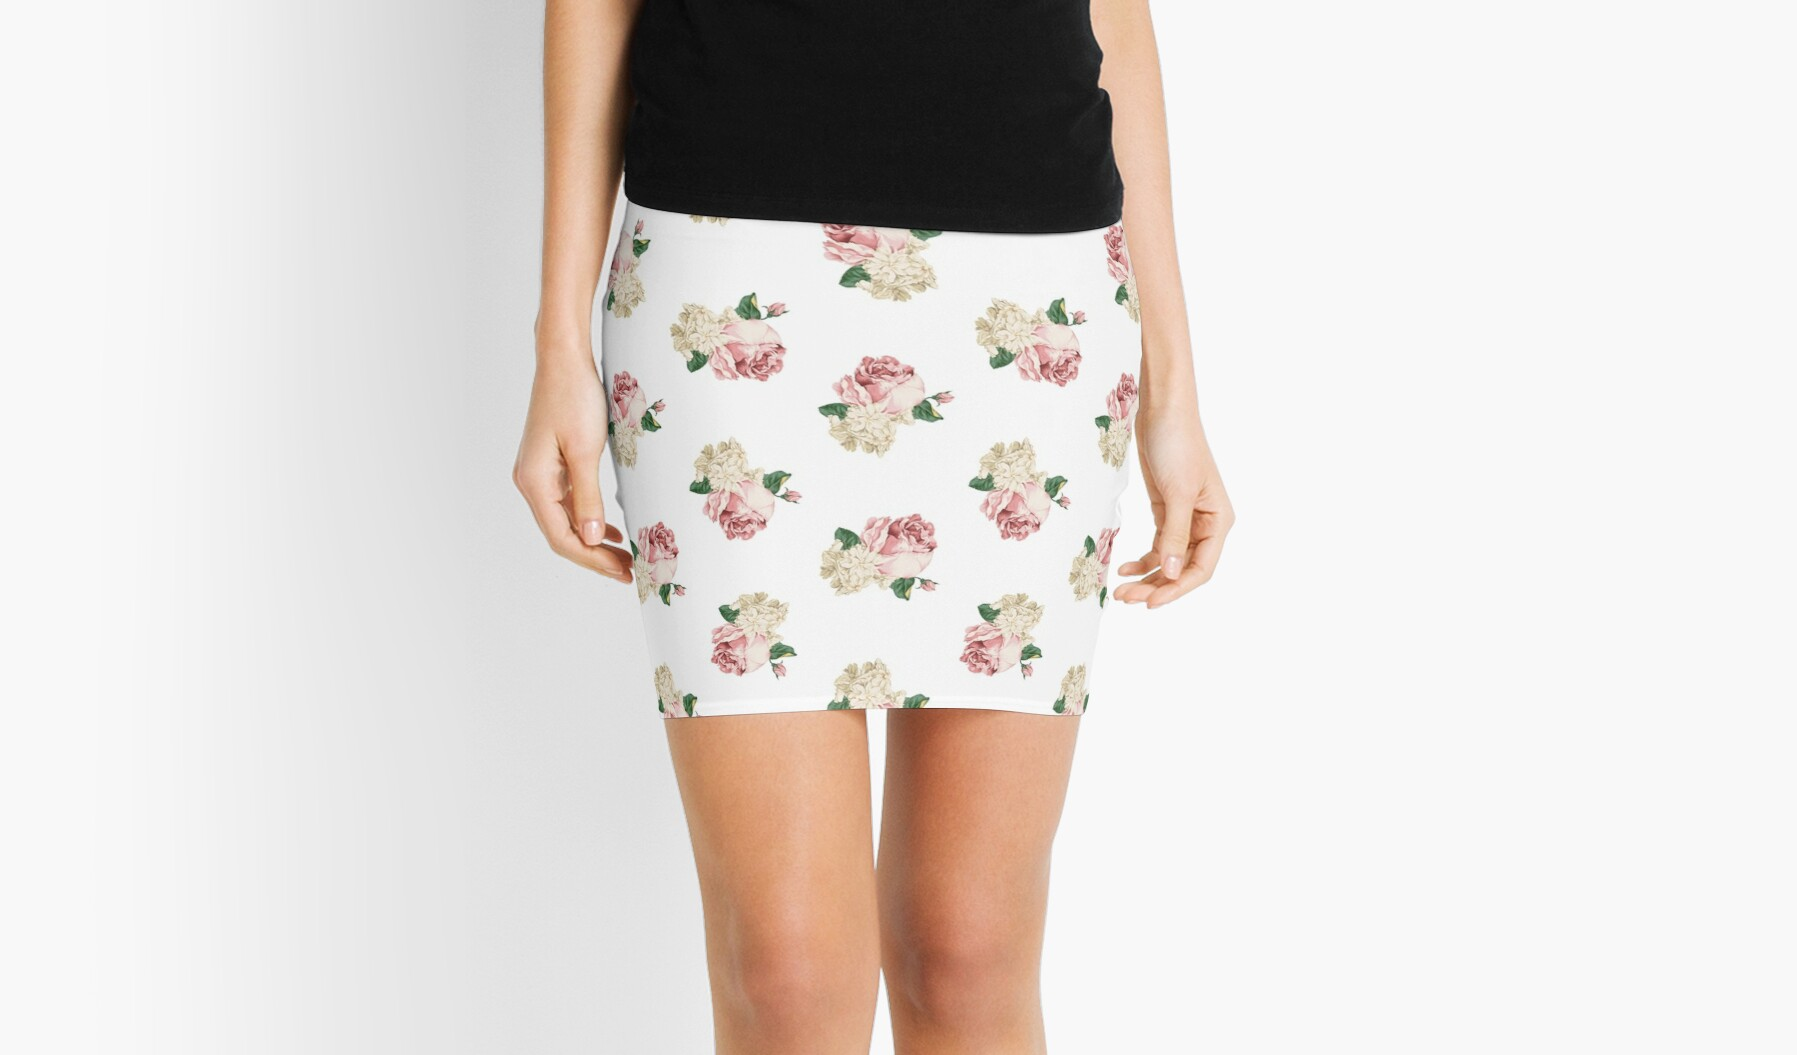 Rambling Rose With White Flowers Mini Skirts By Raan Redbubble